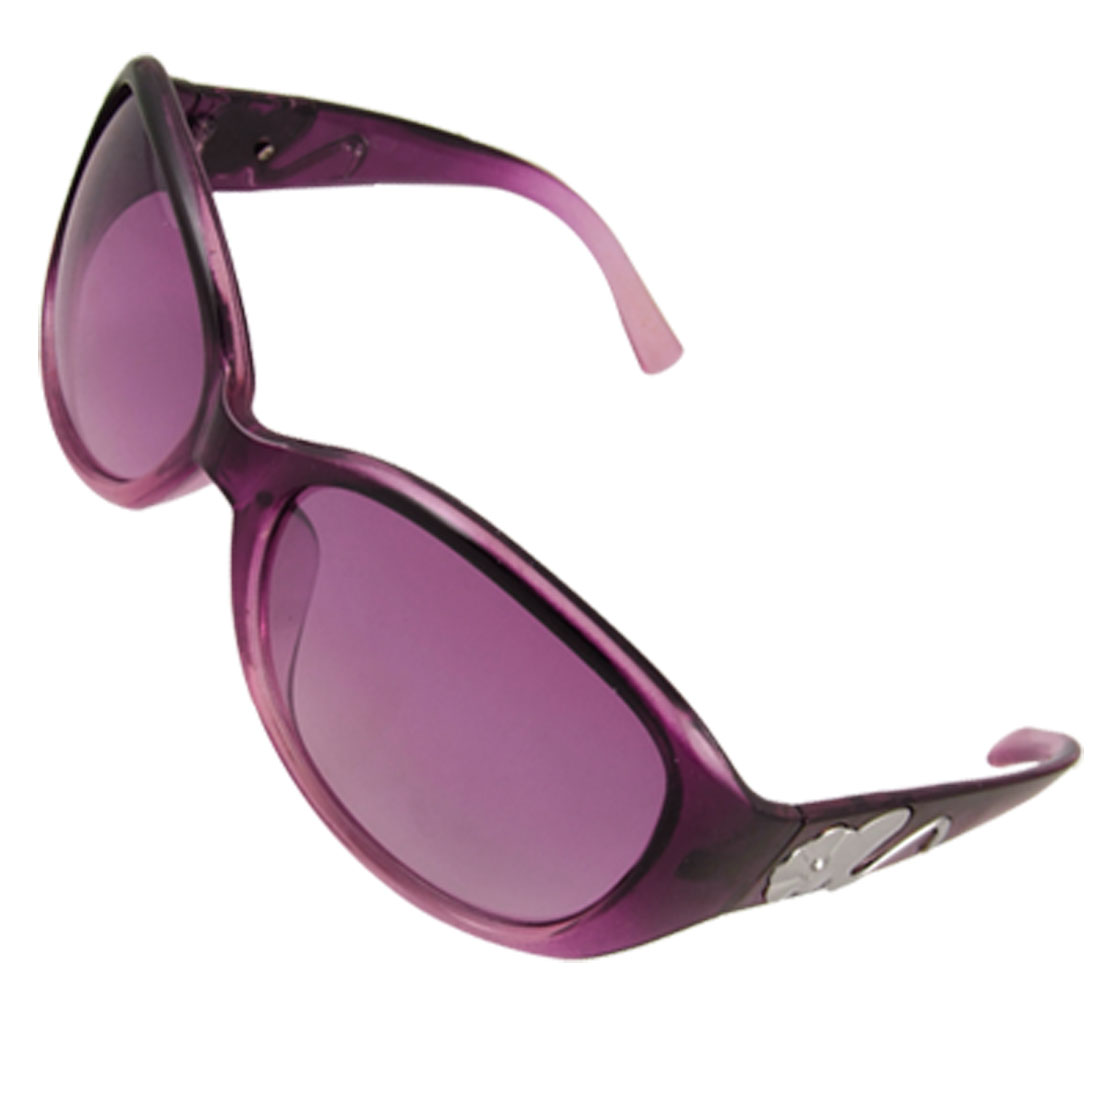 Lady Full Rim Oval Lens Purple Plastic Arm Sunglasses Eyewear